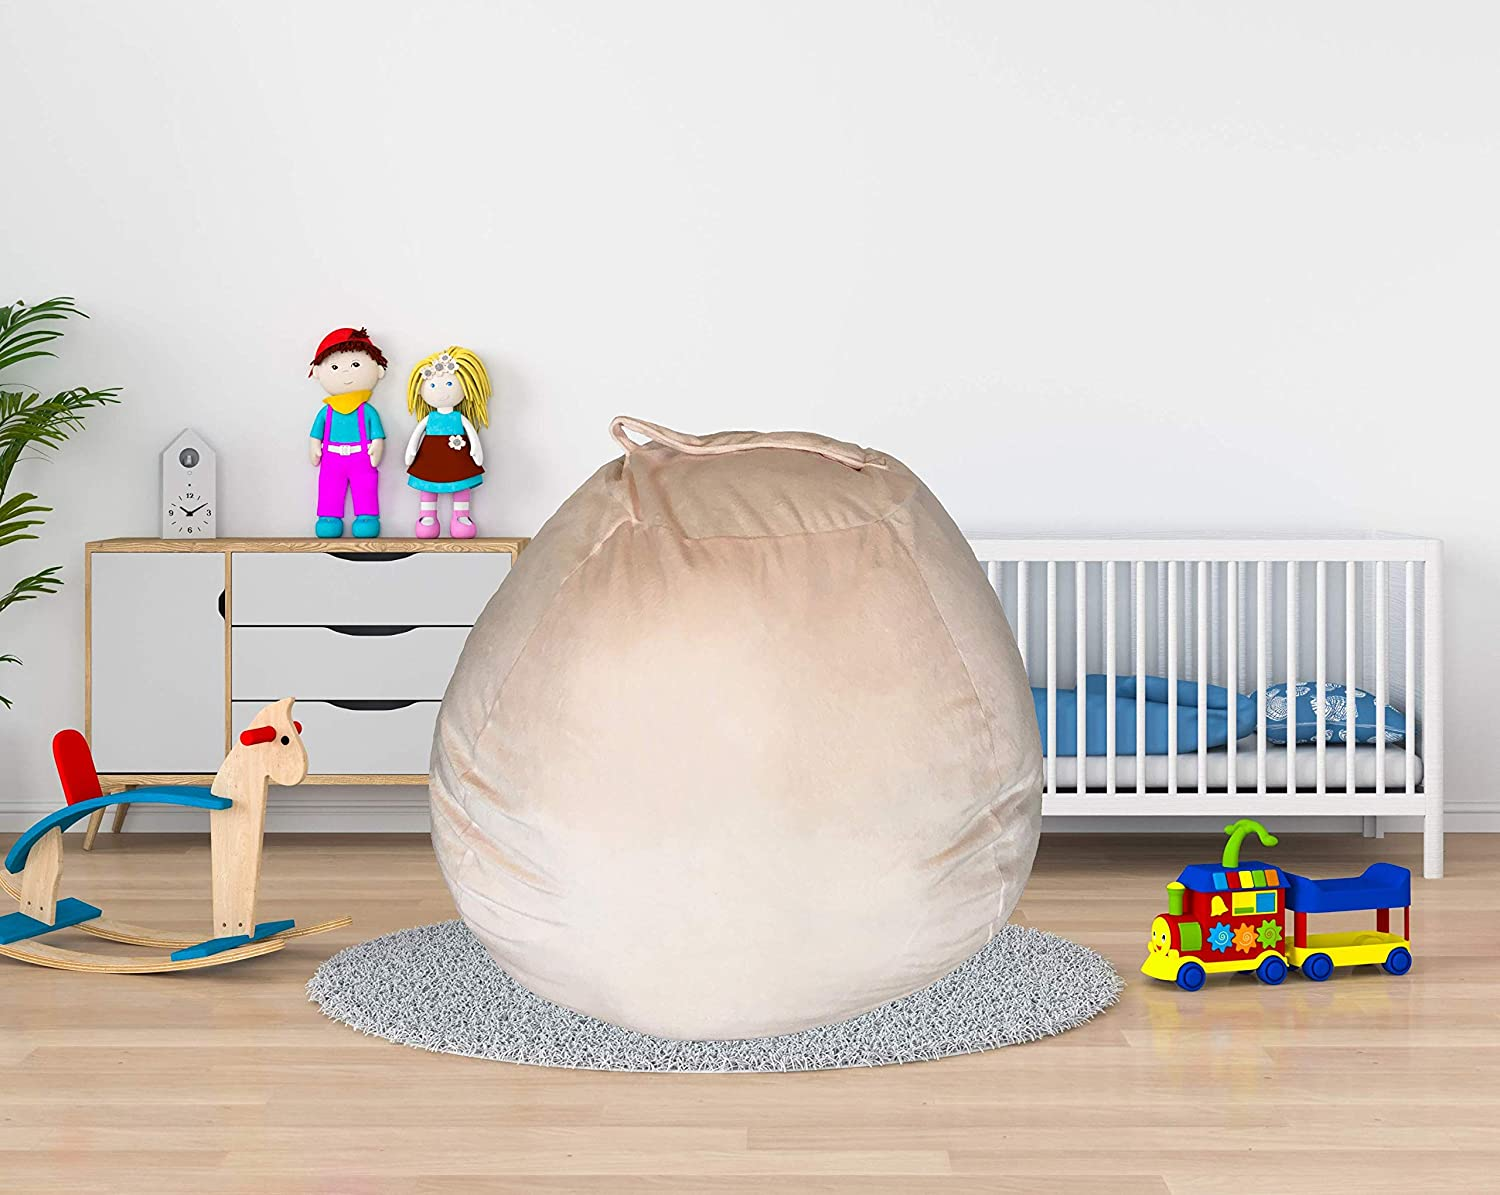 Cover Only Large Size Premium Plush Toy Hammock BeanBag For Toy Storage Blanket Storage Pillow Storage Peach Stuffed Animal Storage Bean Bag Chair for Kids 38 Inch Extra Soft Velvet 2Colors